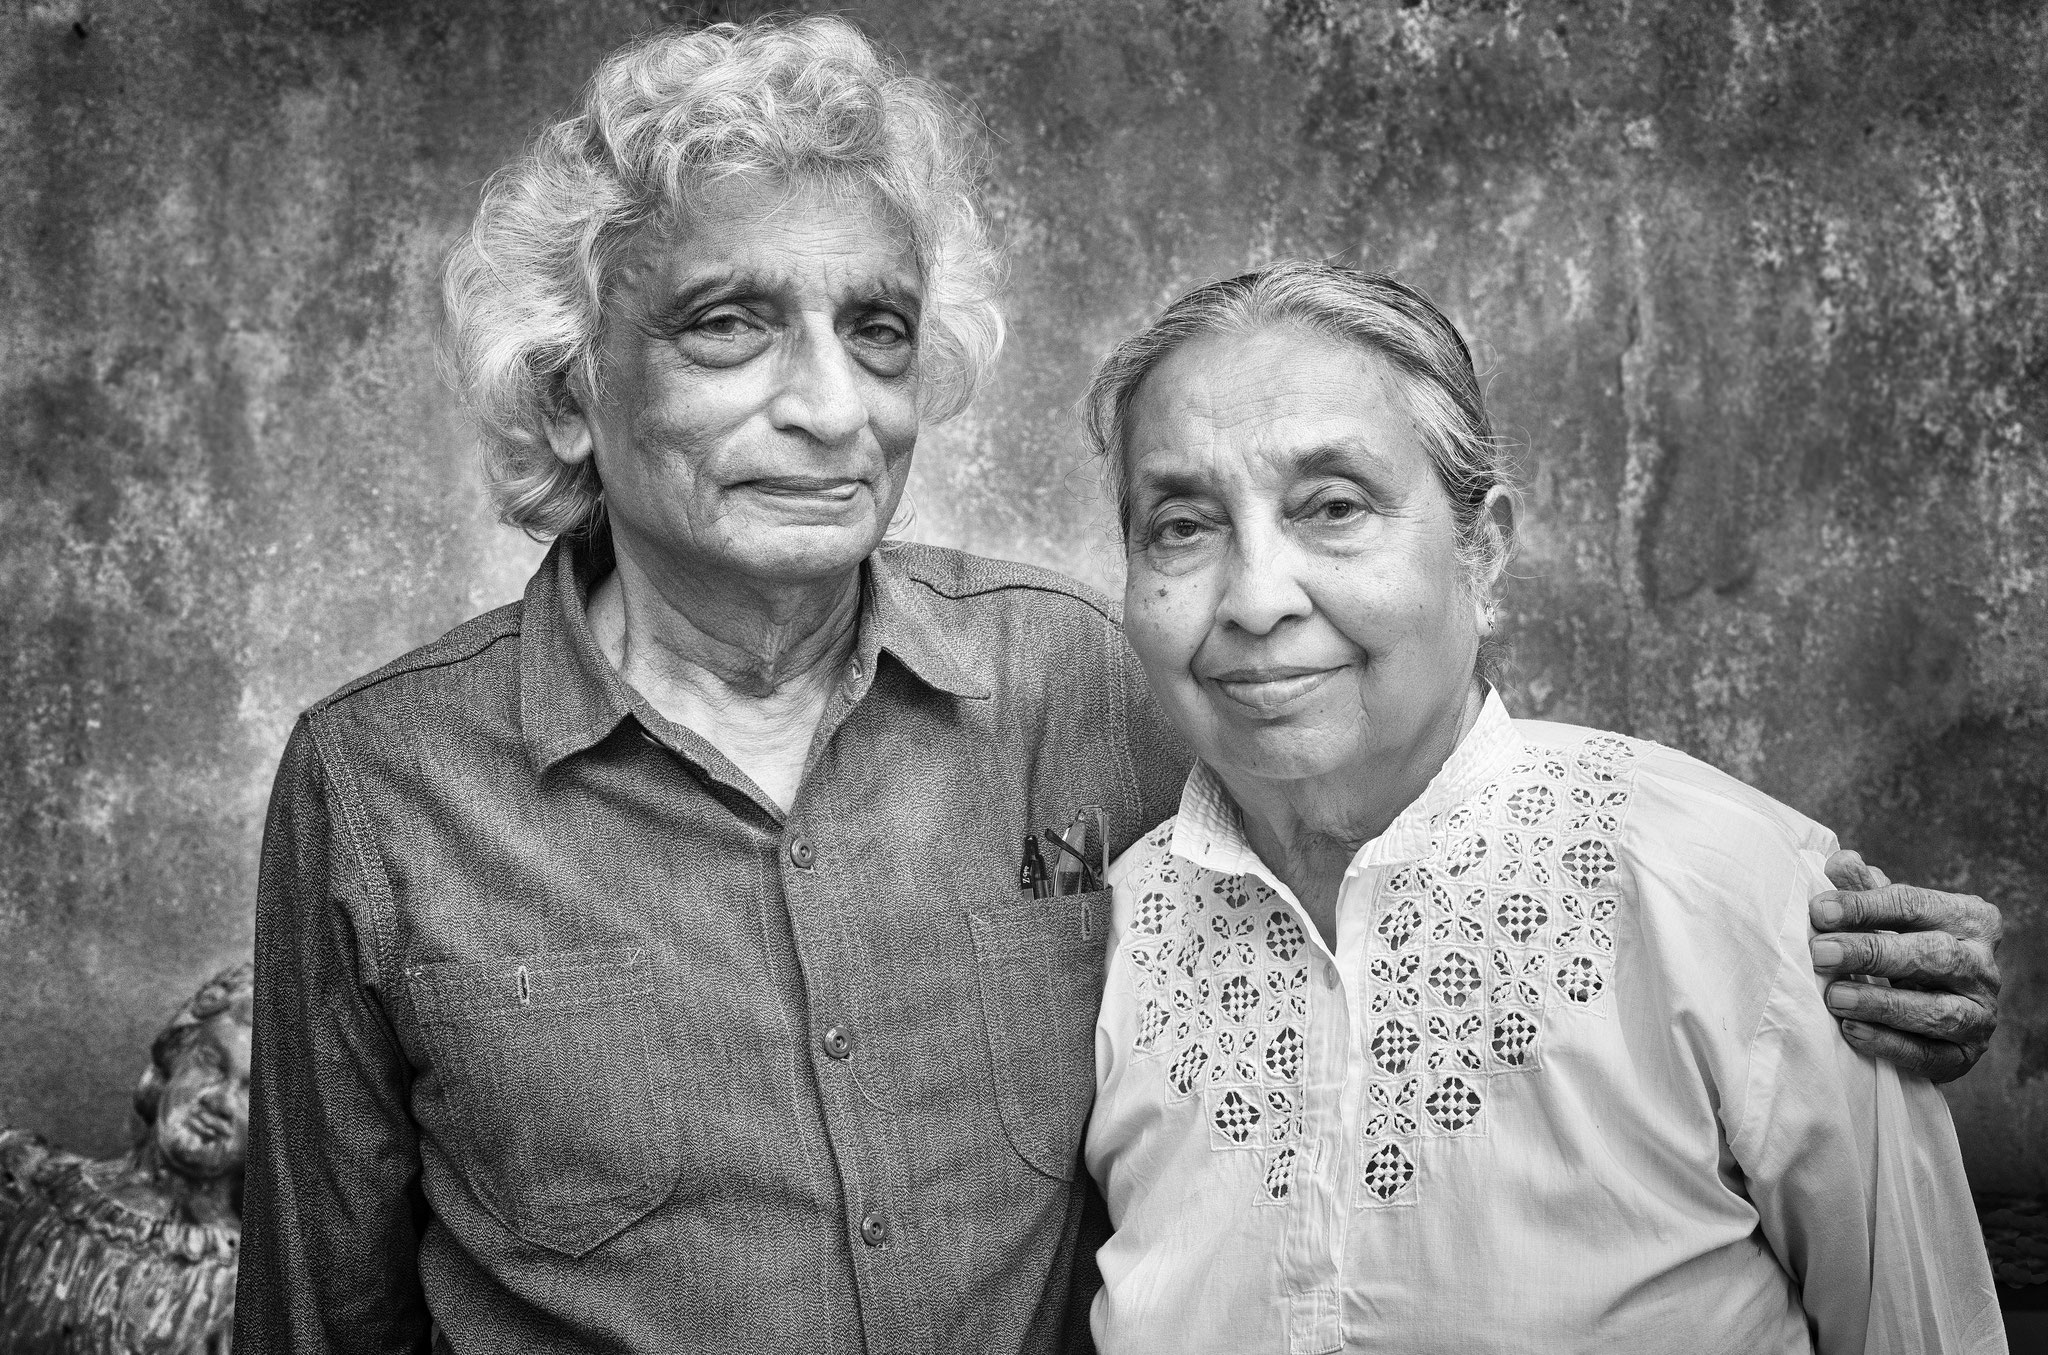 Mr and Mrs Gananath Obeyesekere, Professor of Anthropology at Princeton University, (Colombo 2014)